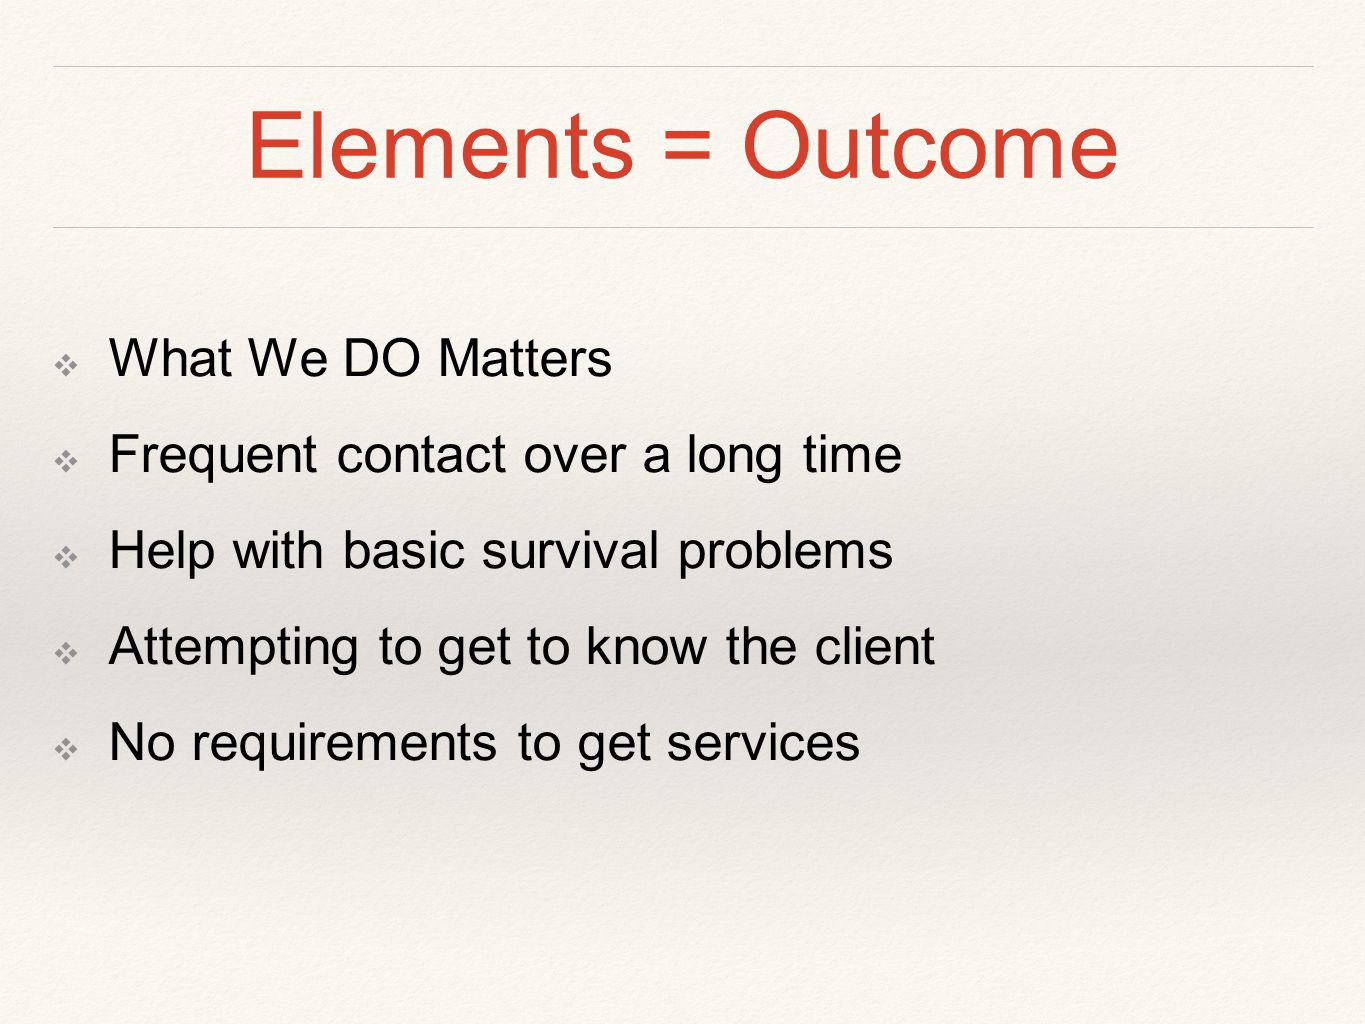 Elements = Outcome ❖ What We DO Matters ❖ Frequent contact over a long time ❖ Help with basic survival problems ❖ Attempting to get to know the client ❖ No requirements to get services